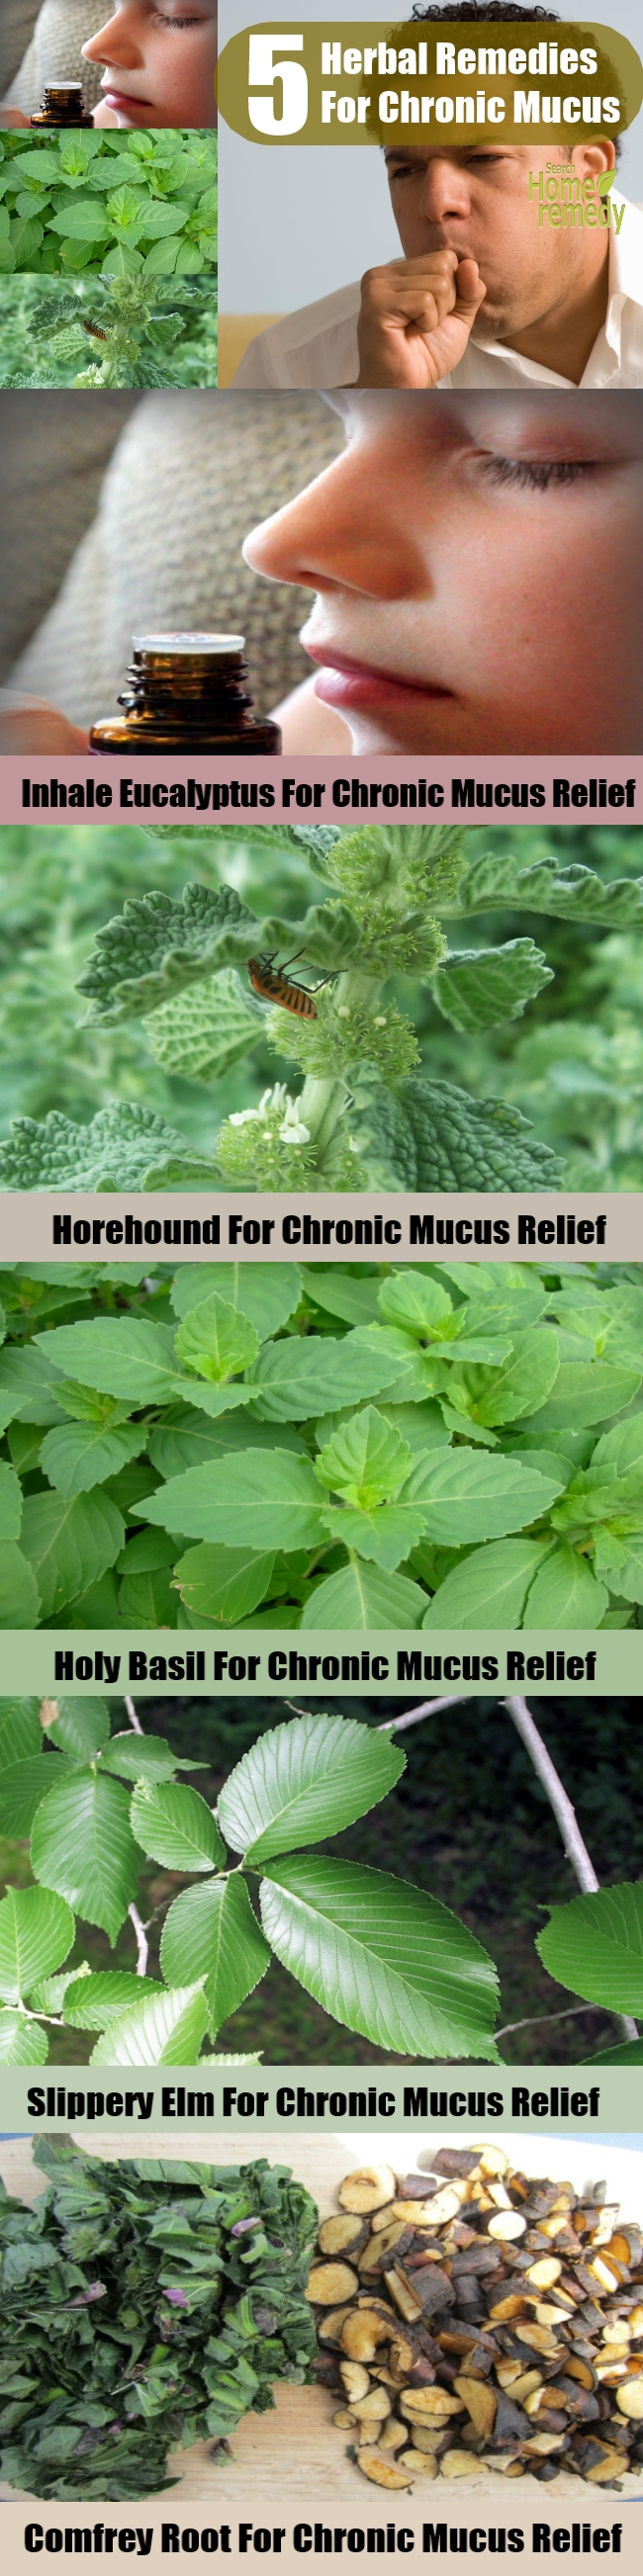 Top 5 Herbal Remedies For Chronic Mucus